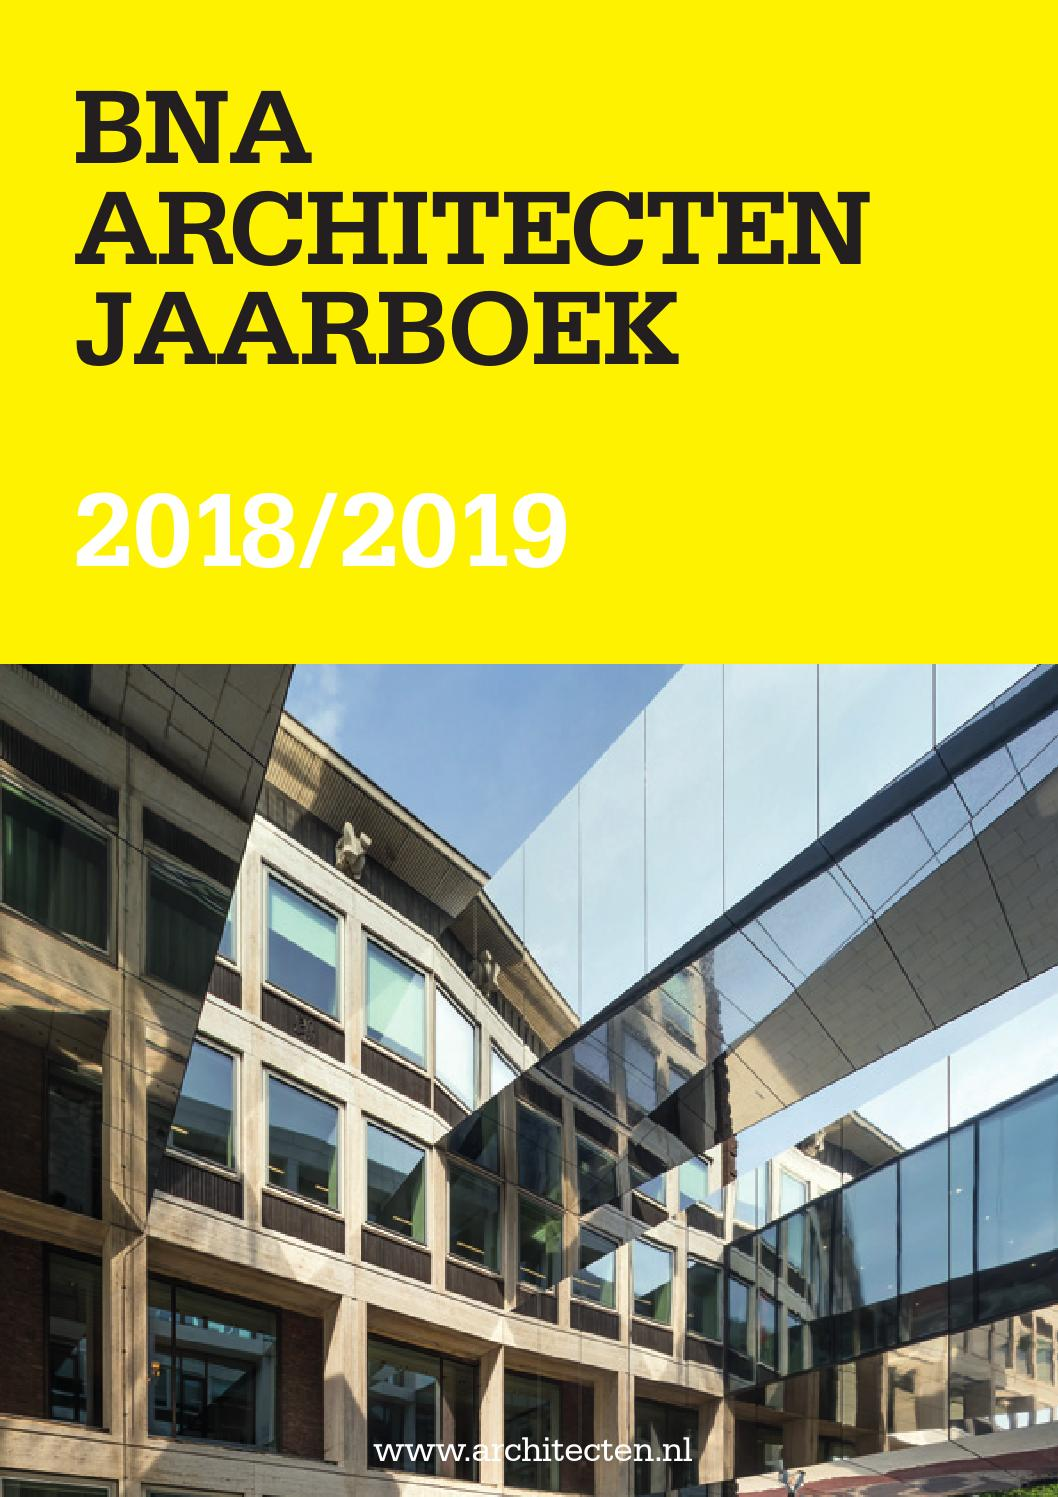 BNA Architecten Jaarboek 2018/2019 by BNA - Branchevereniging Nederlandse  Architectenbureaus - issuu